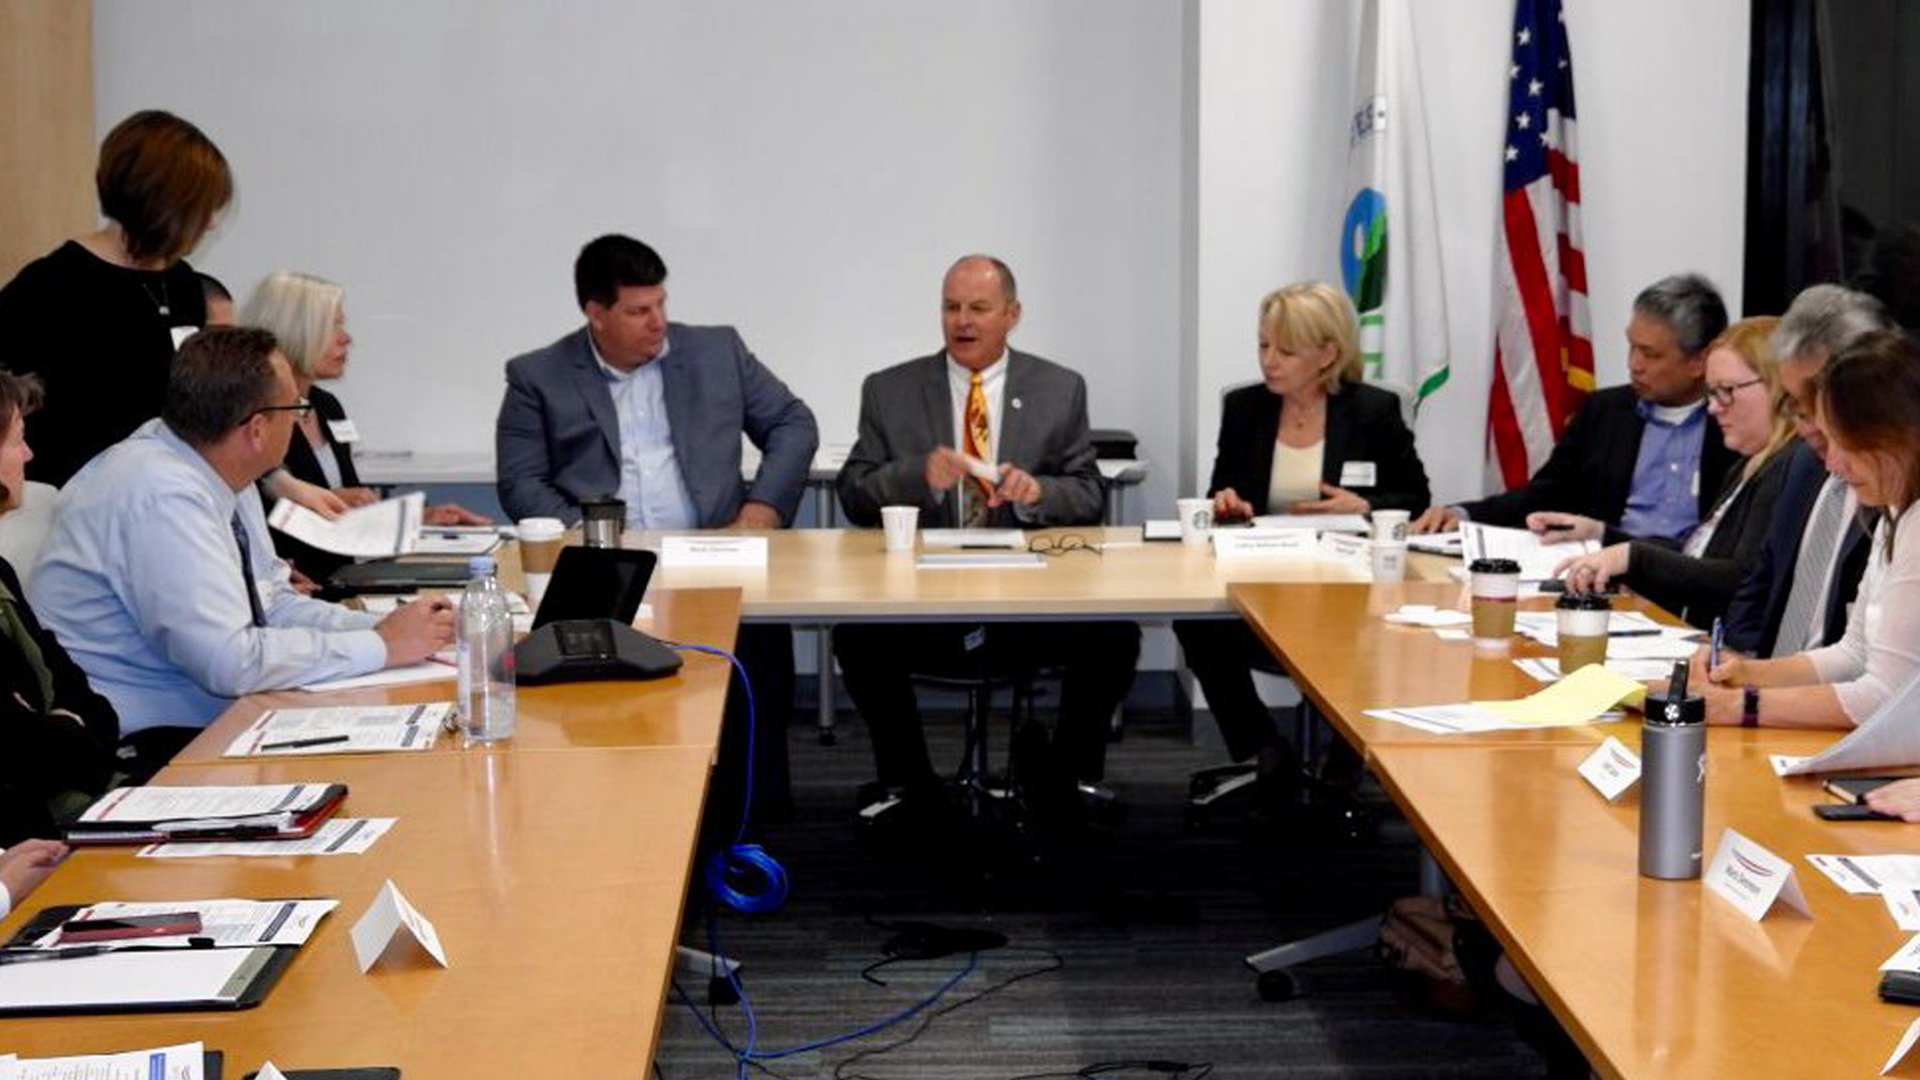 Regional administrator Mike Stoker, center, presides over a meeting with oils and gas industry representatives in Los Angeles in an image tweeted by the Environmental Protection Agency's District 9 on April 24, 2019.